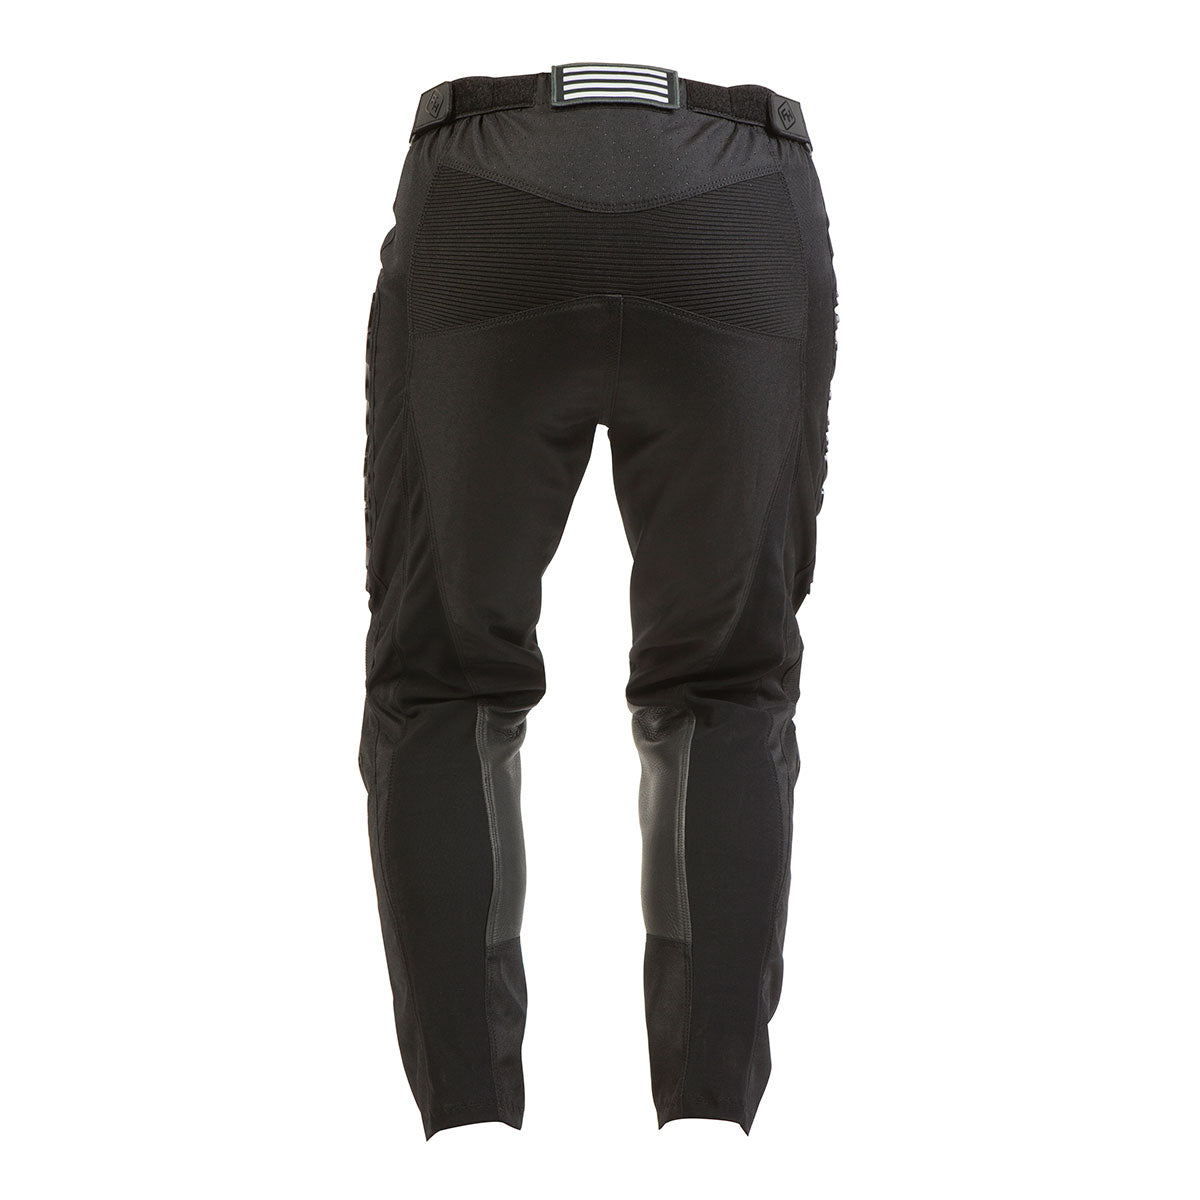 Fasthouse - Grindhouse Pant -Solid Black